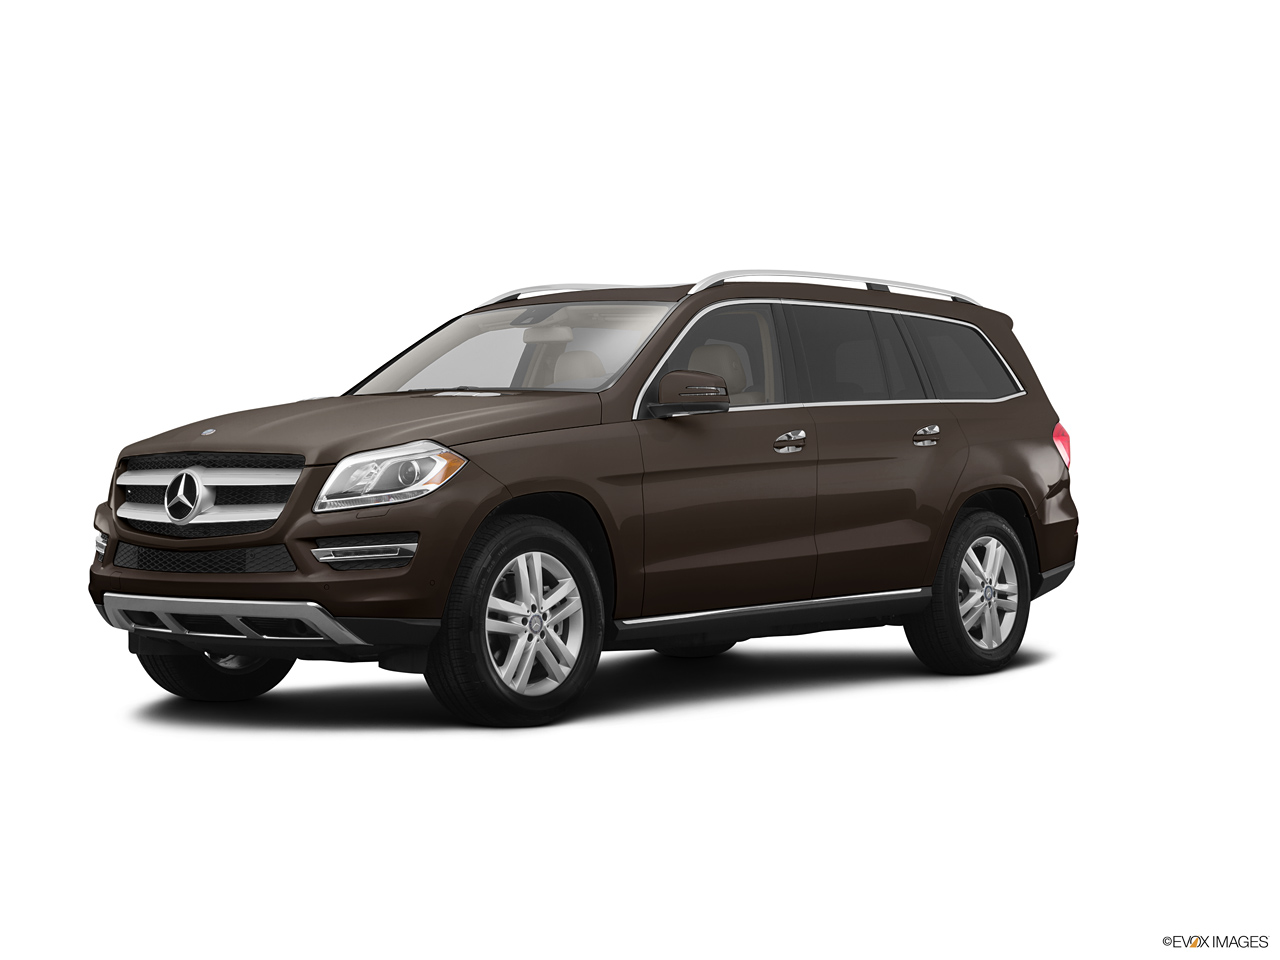 Car pictures list for mercedes benz gl class 2016 gl 500 for Mercedes benz gl